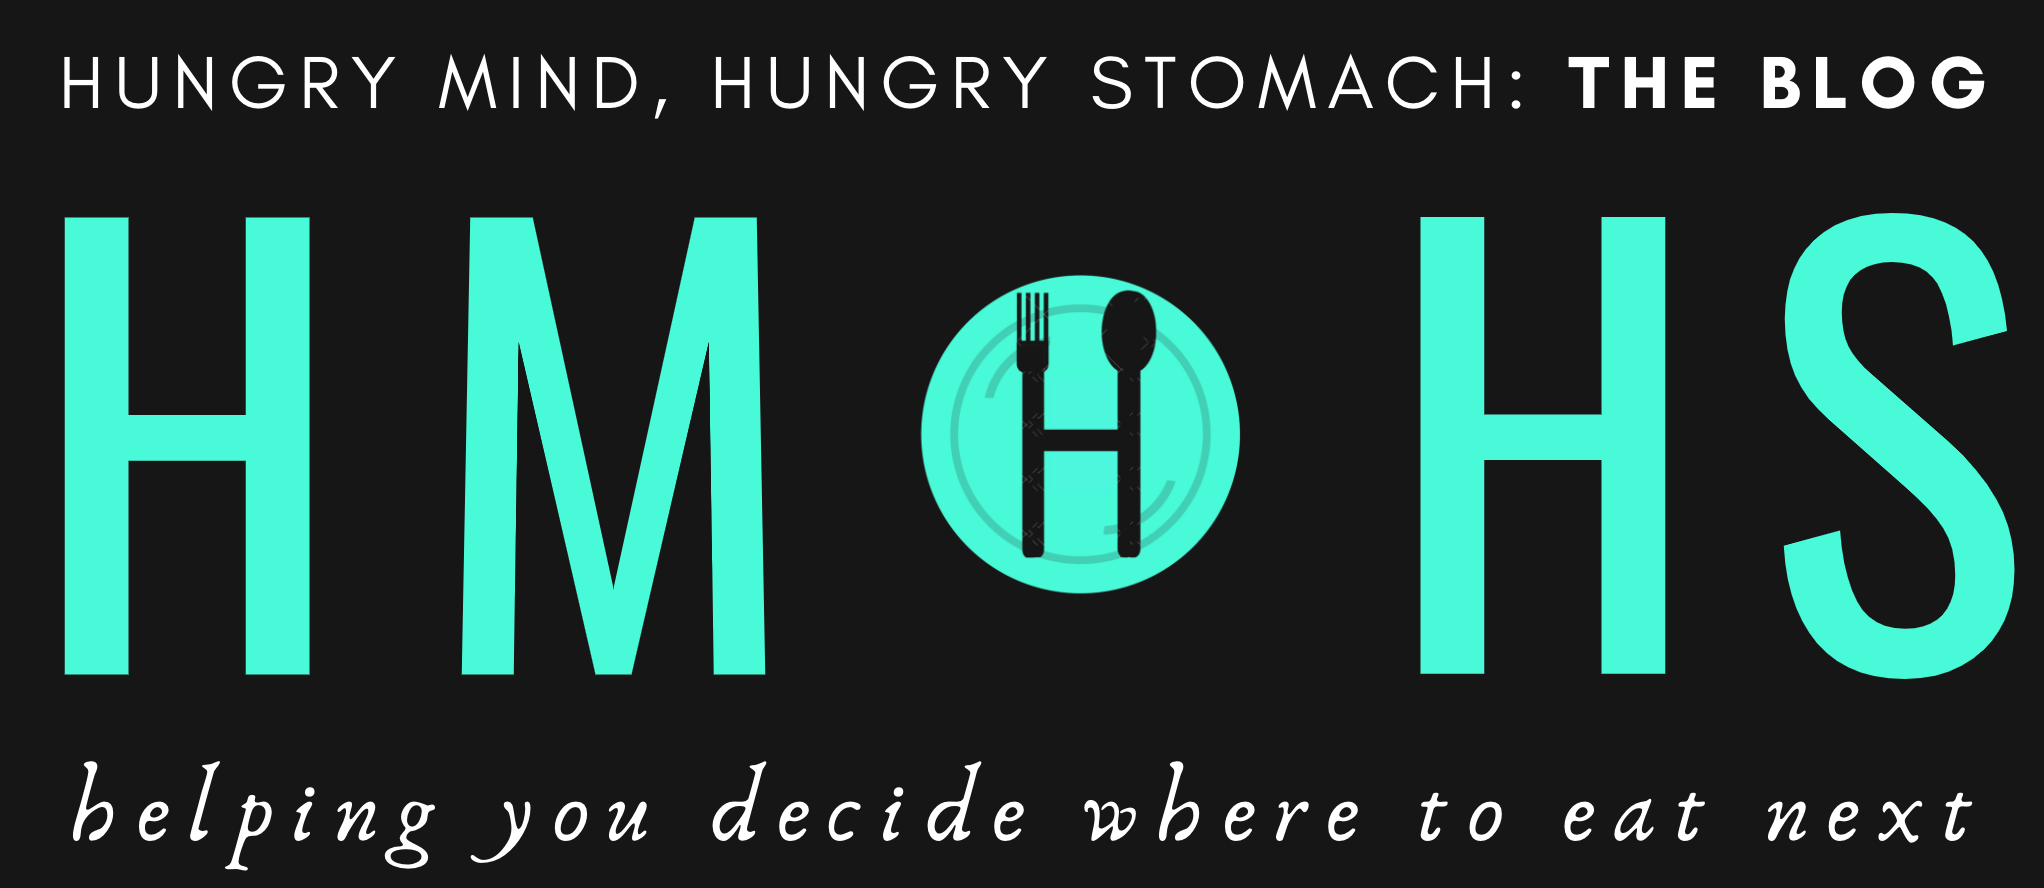 Hungry Mind, Hungry Stomach